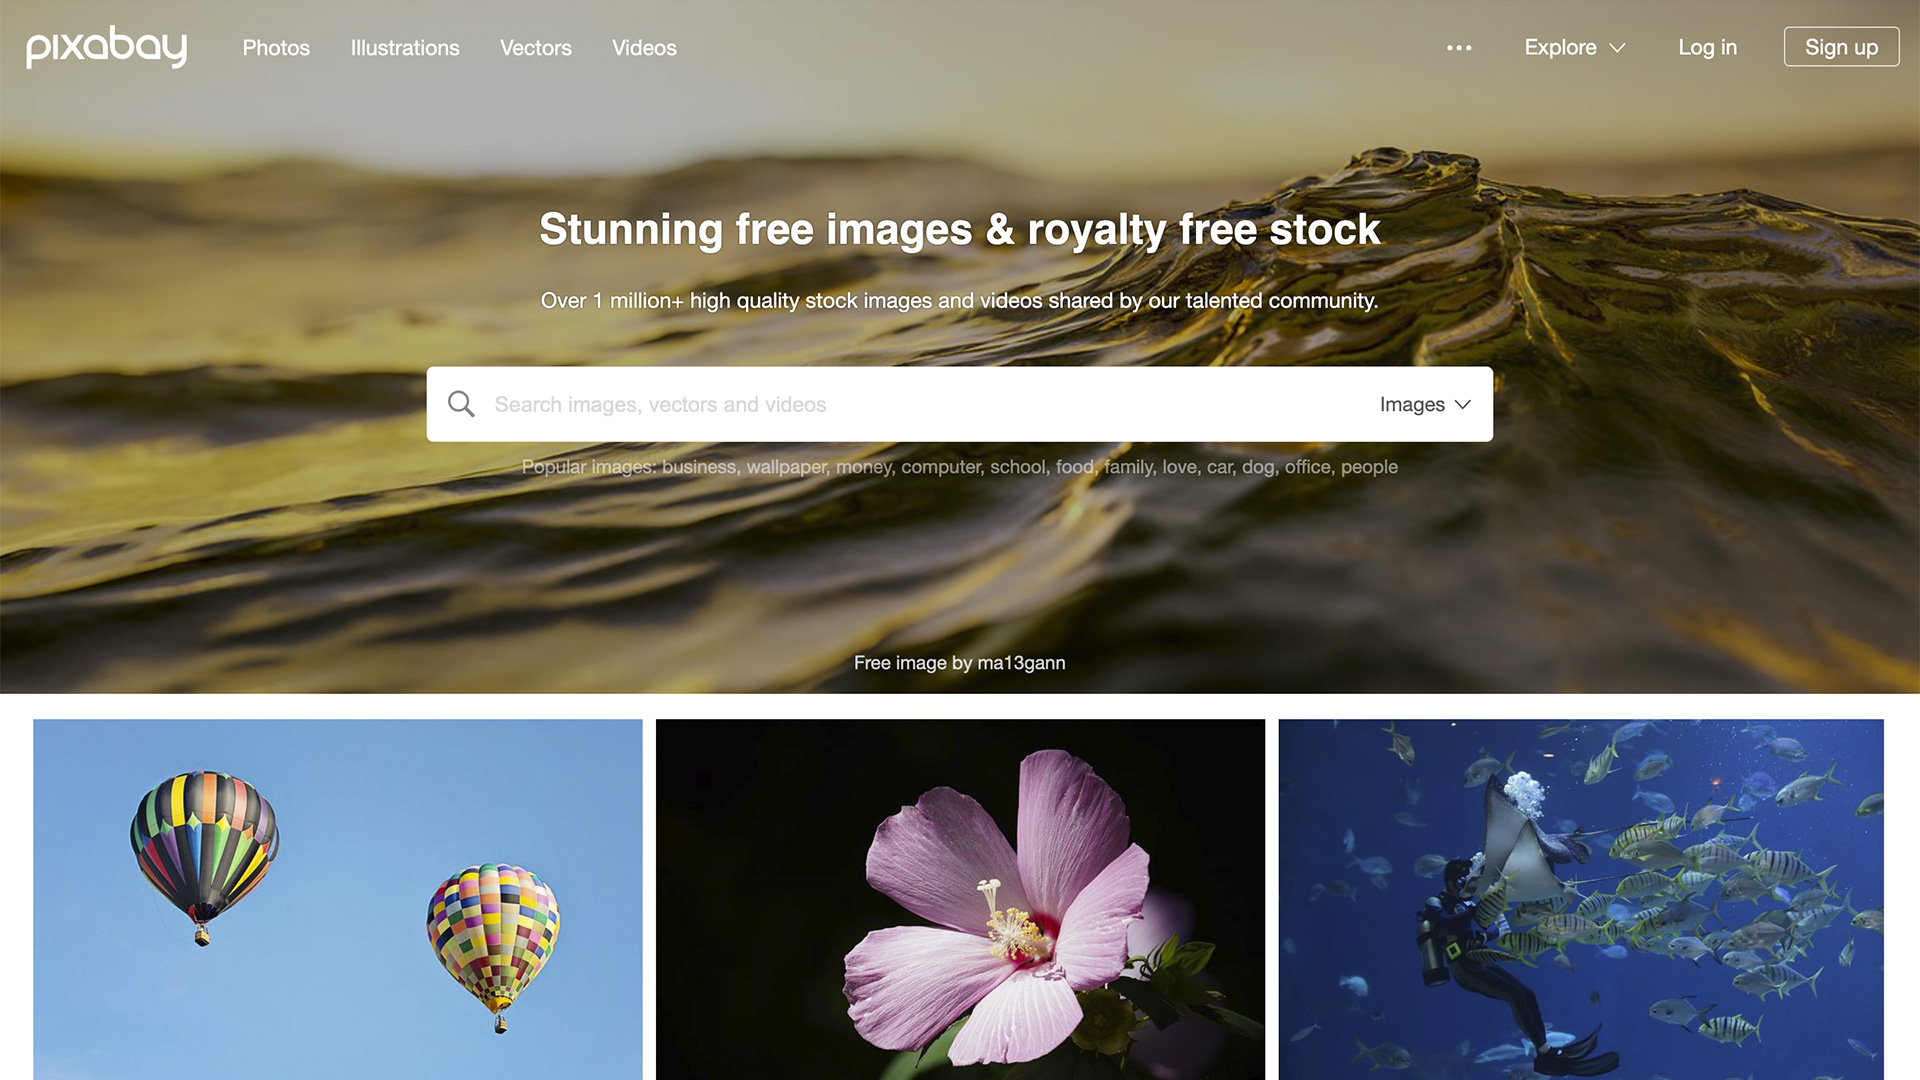 Screen shot of the Pixabay website